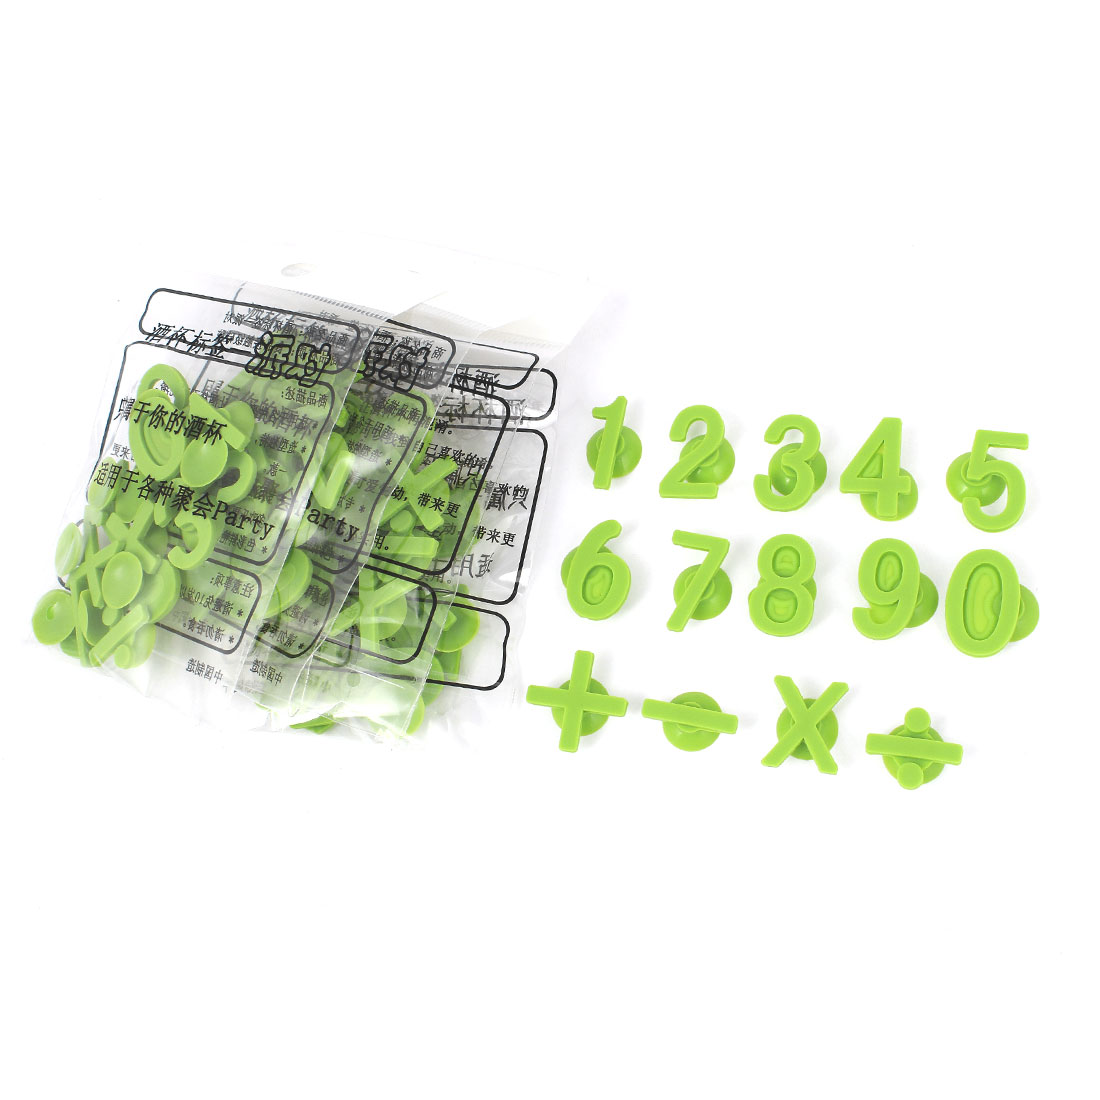 Green Minus Number Shape Suction Cup Identify Wine Glasses Drink Markers 70pcs